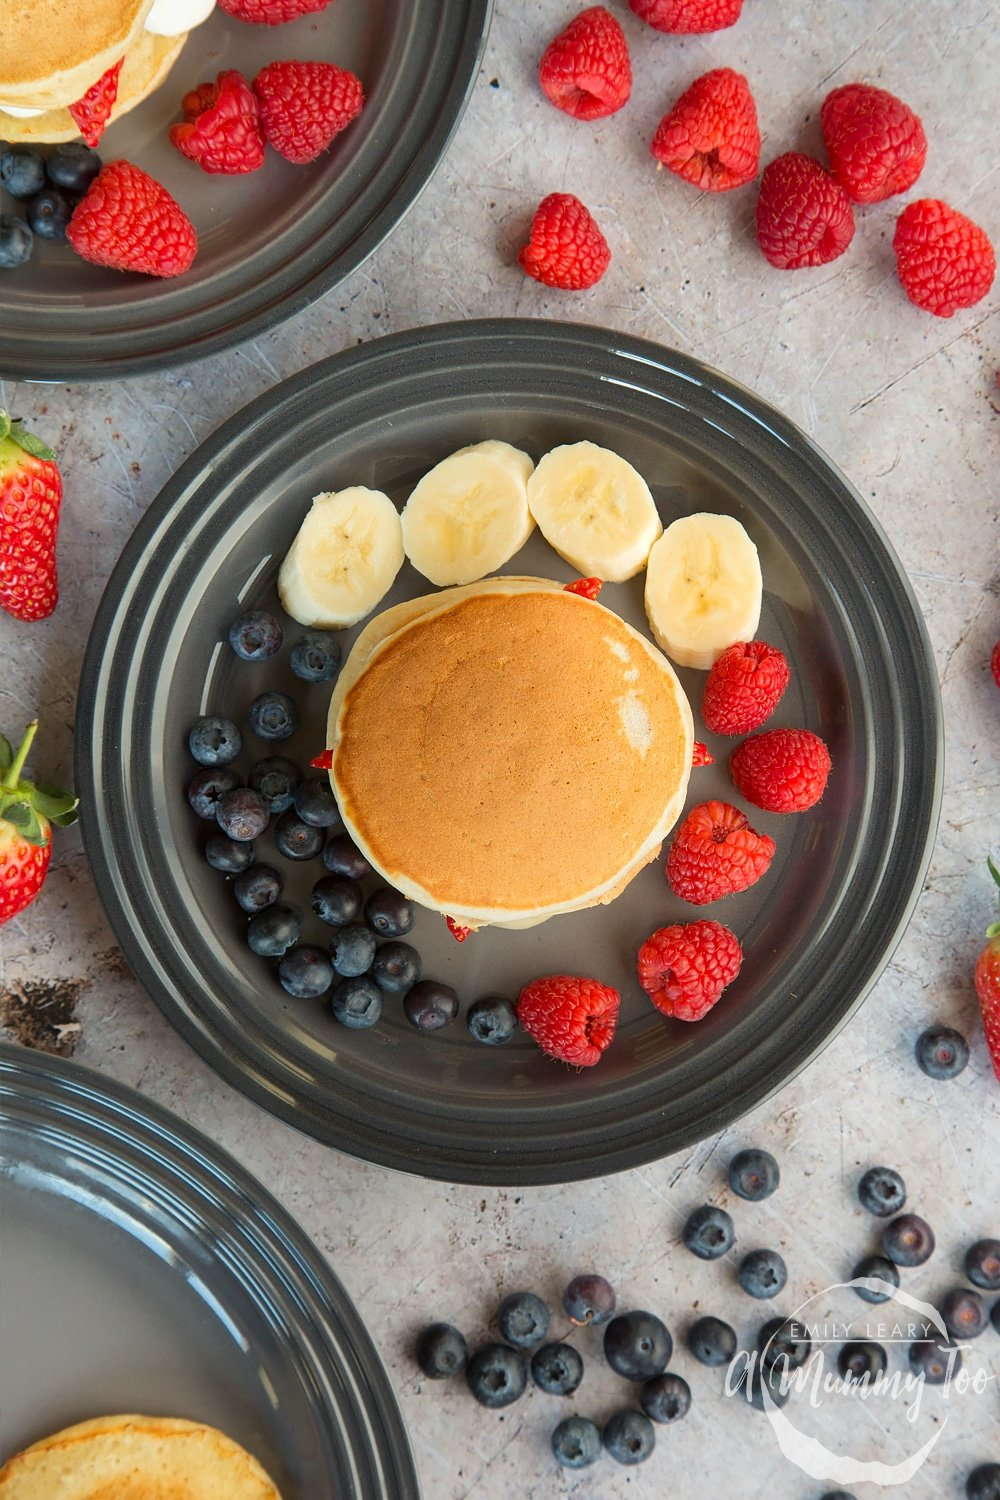 Surround your fruity pancake stack with fresh fruit and serve